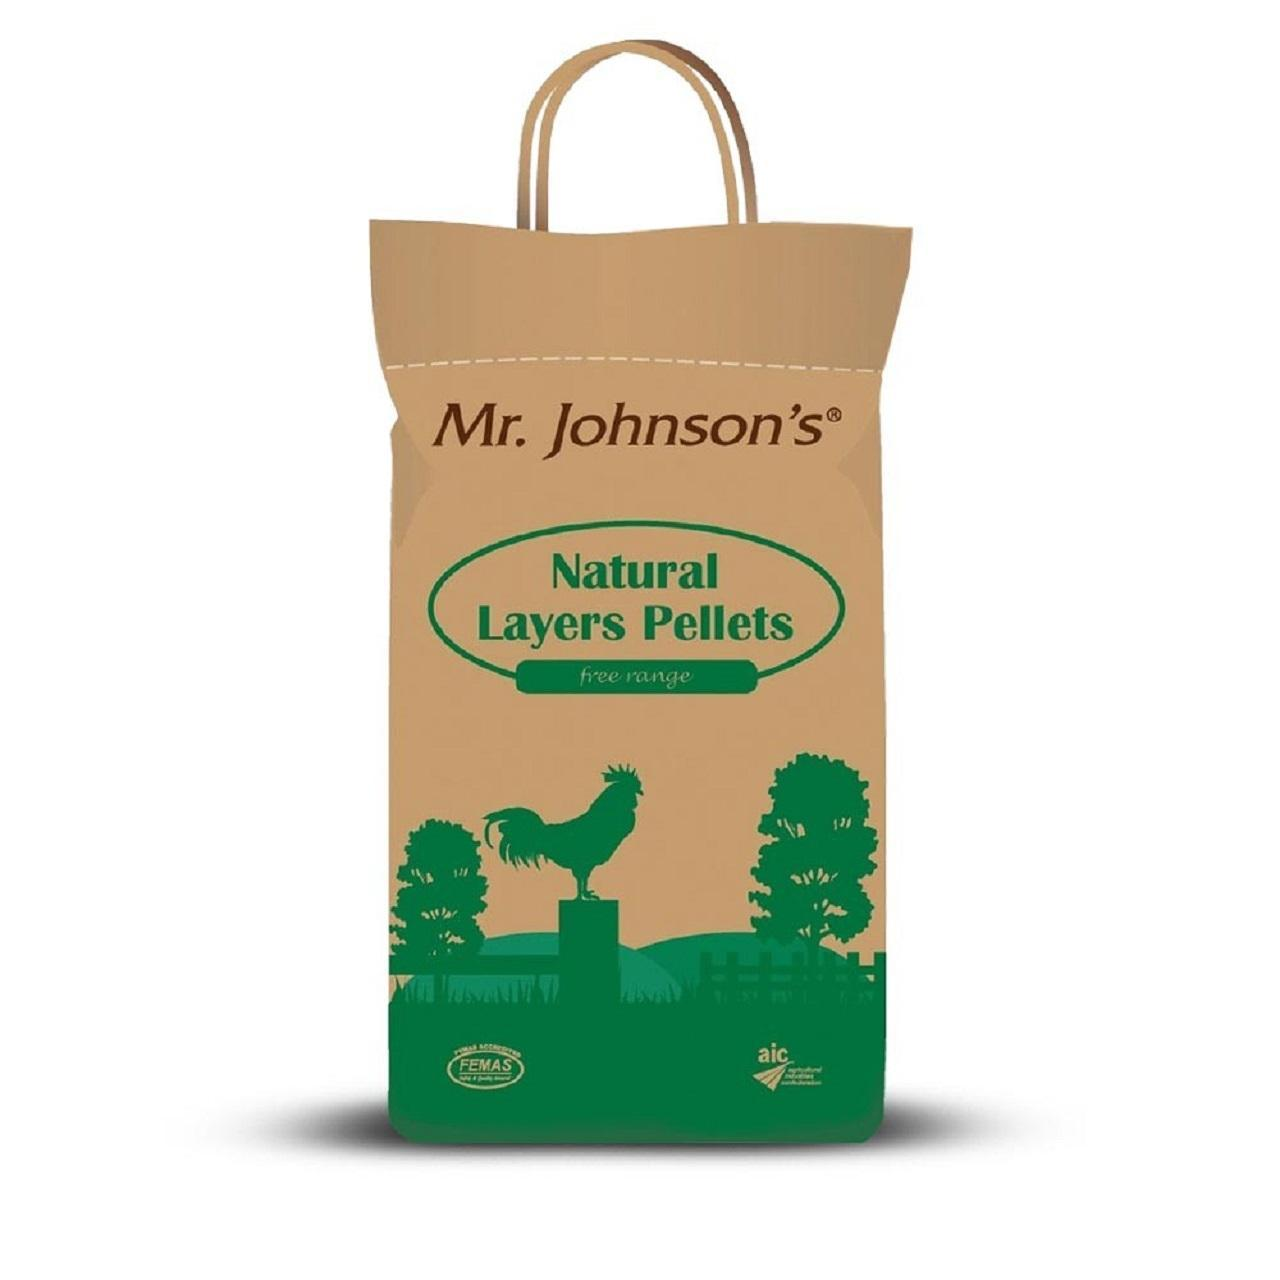 An image of Mr Johnsons Natural Layers Pellets